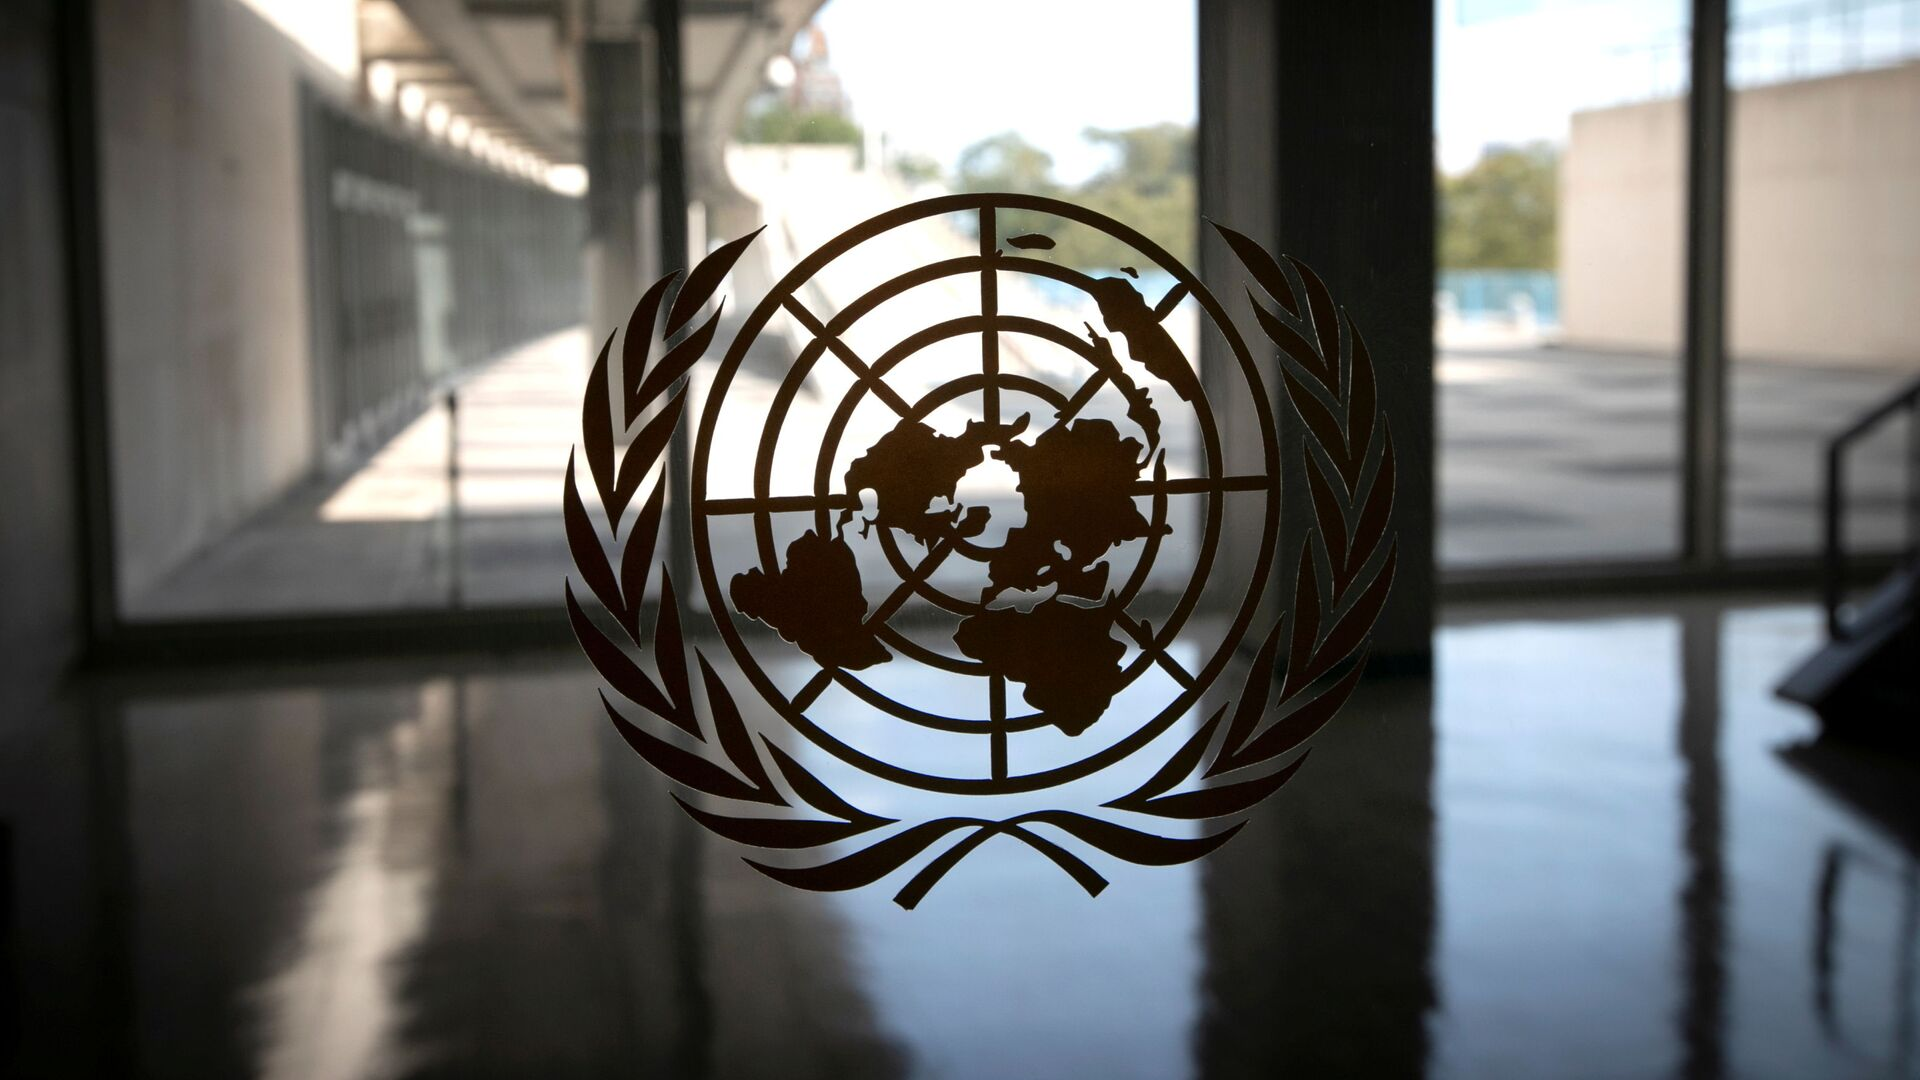 The United Nations logo is seen on a window in an empty hallway at United Nations headquarters during the 75th annual UN General Assembly high-level debate, which is being held mostly virtually due to the coronavirus disease (COVID-19) pandemic in New York, US, September 21, 2020 - Sputnik International, 1920, 21.09.2021